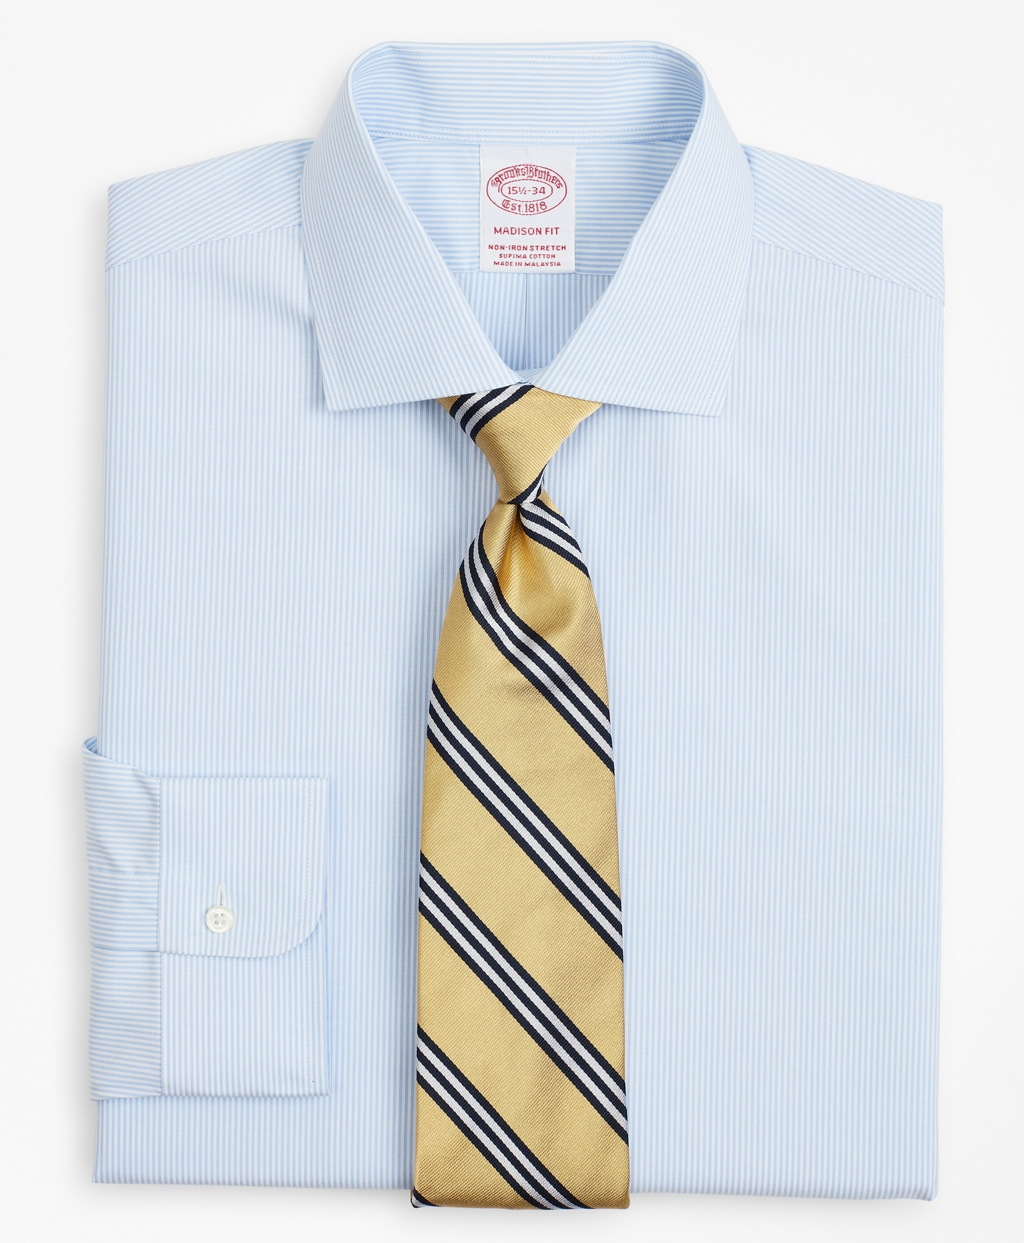 Brooksbrothers Stretch Madison Relaxed-Fit Dress Shirt, Non-Iron Poplin English Collar Fine Stripe